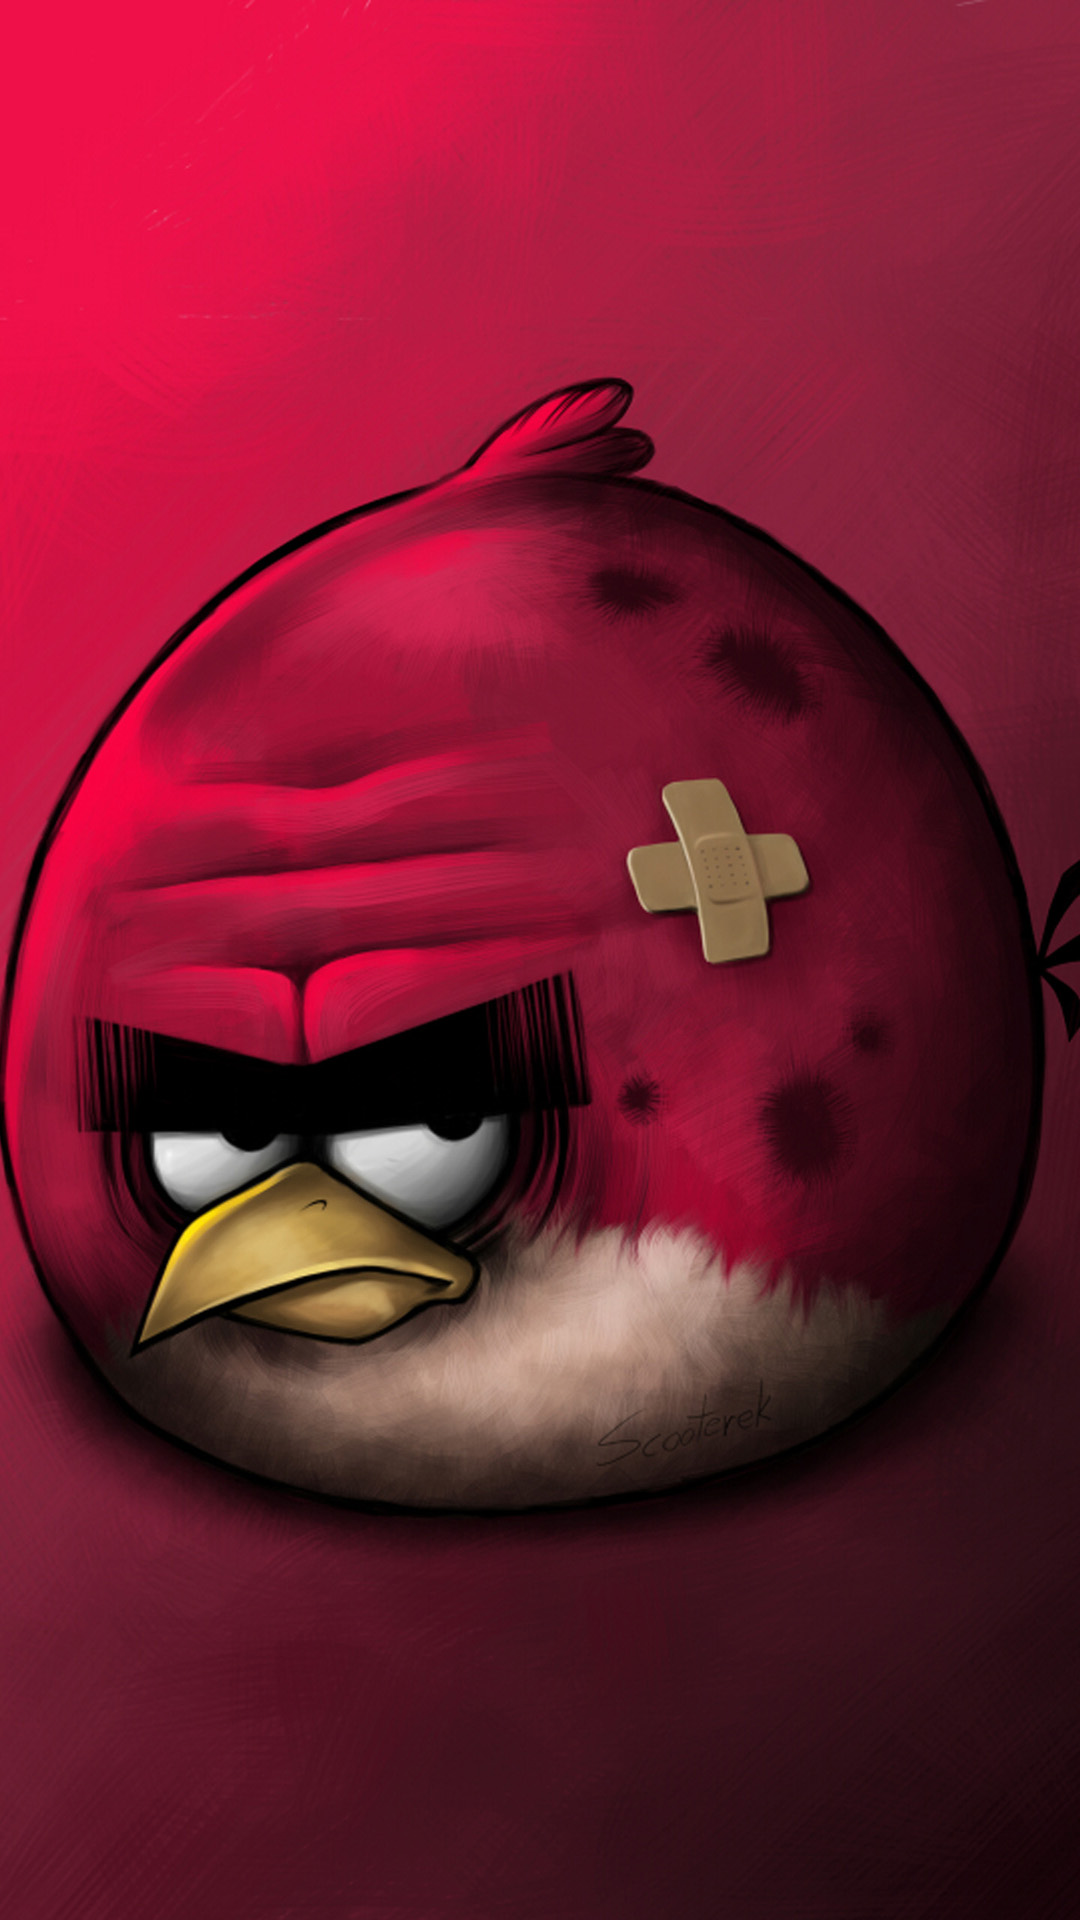 iphone 6 plus angry birds 19 hd wallpaper